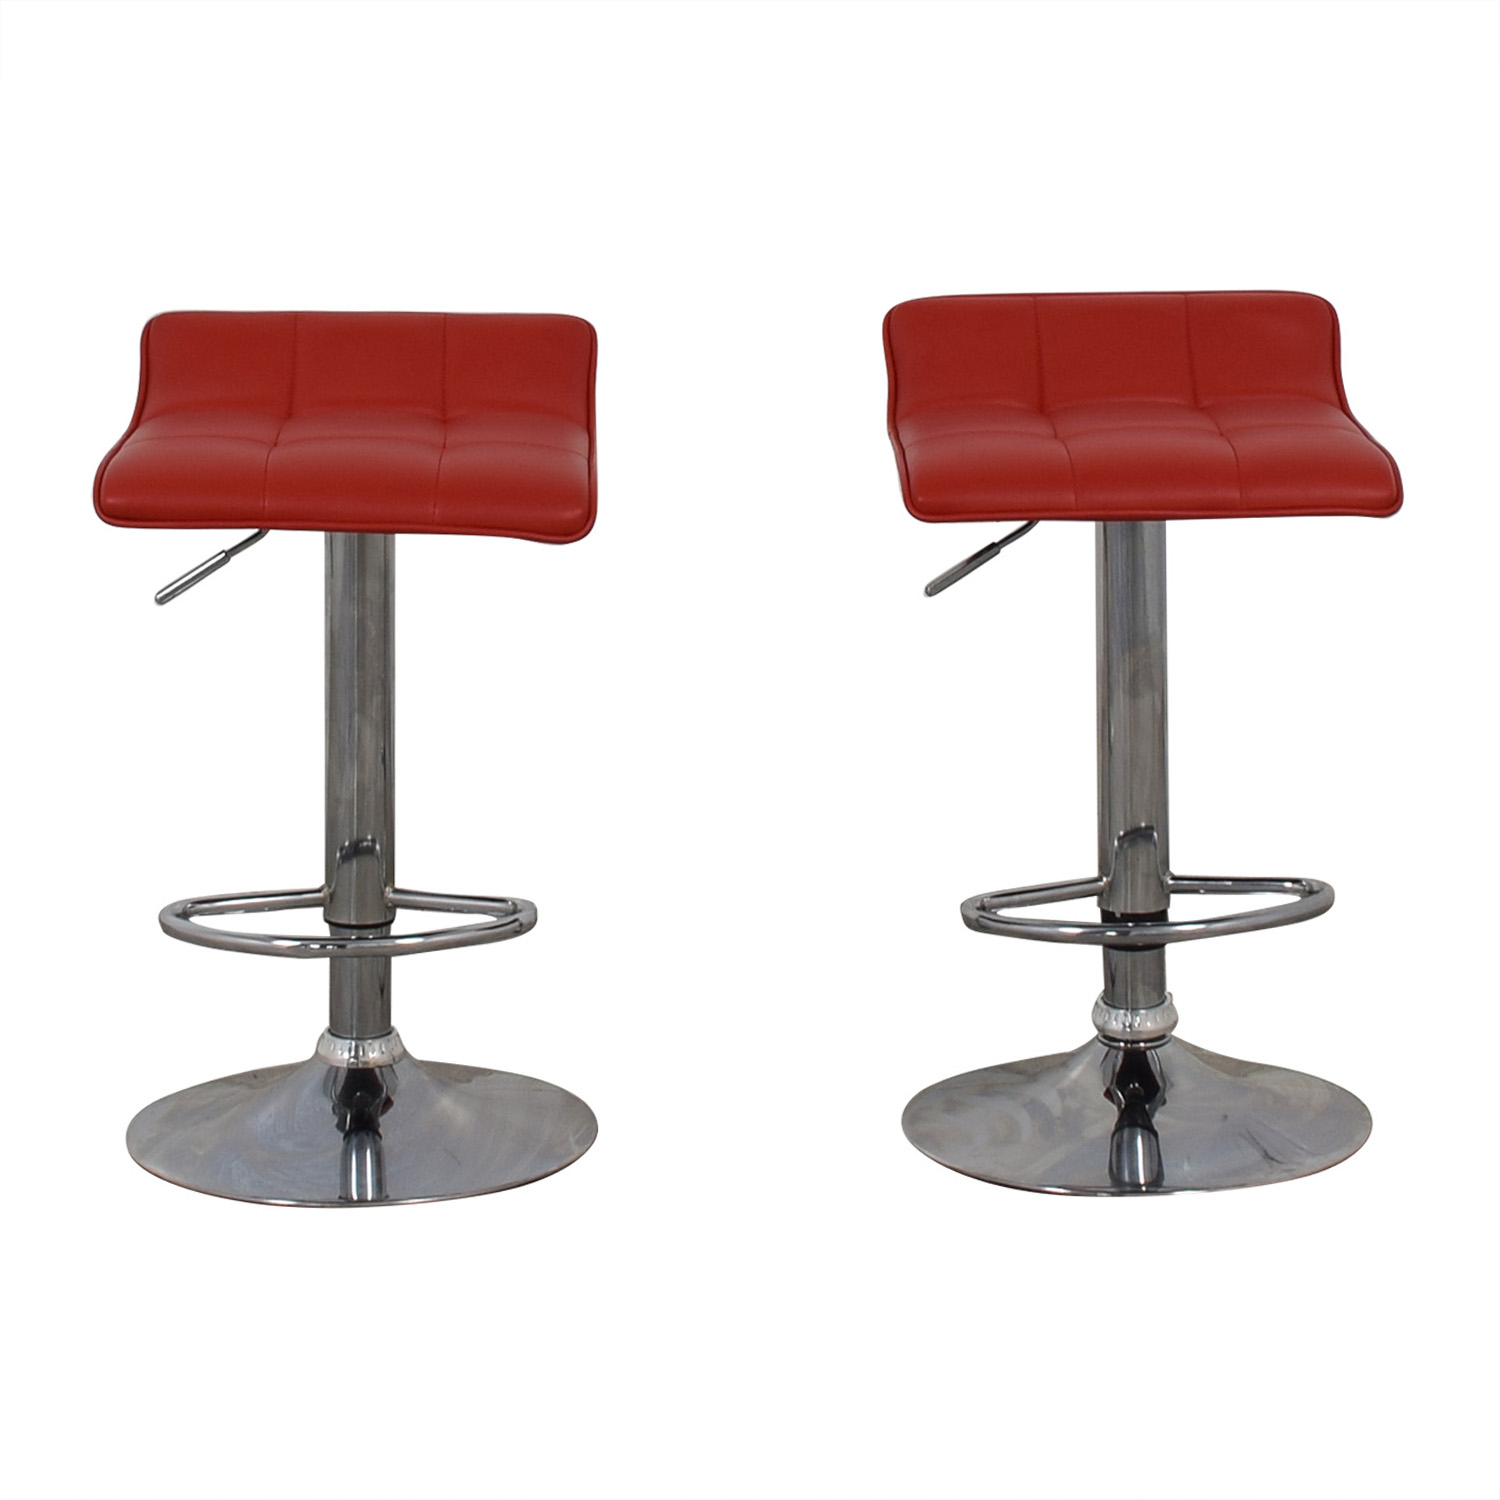 buy Wayfair Red Adjustable Barstools Wayfair Chairs